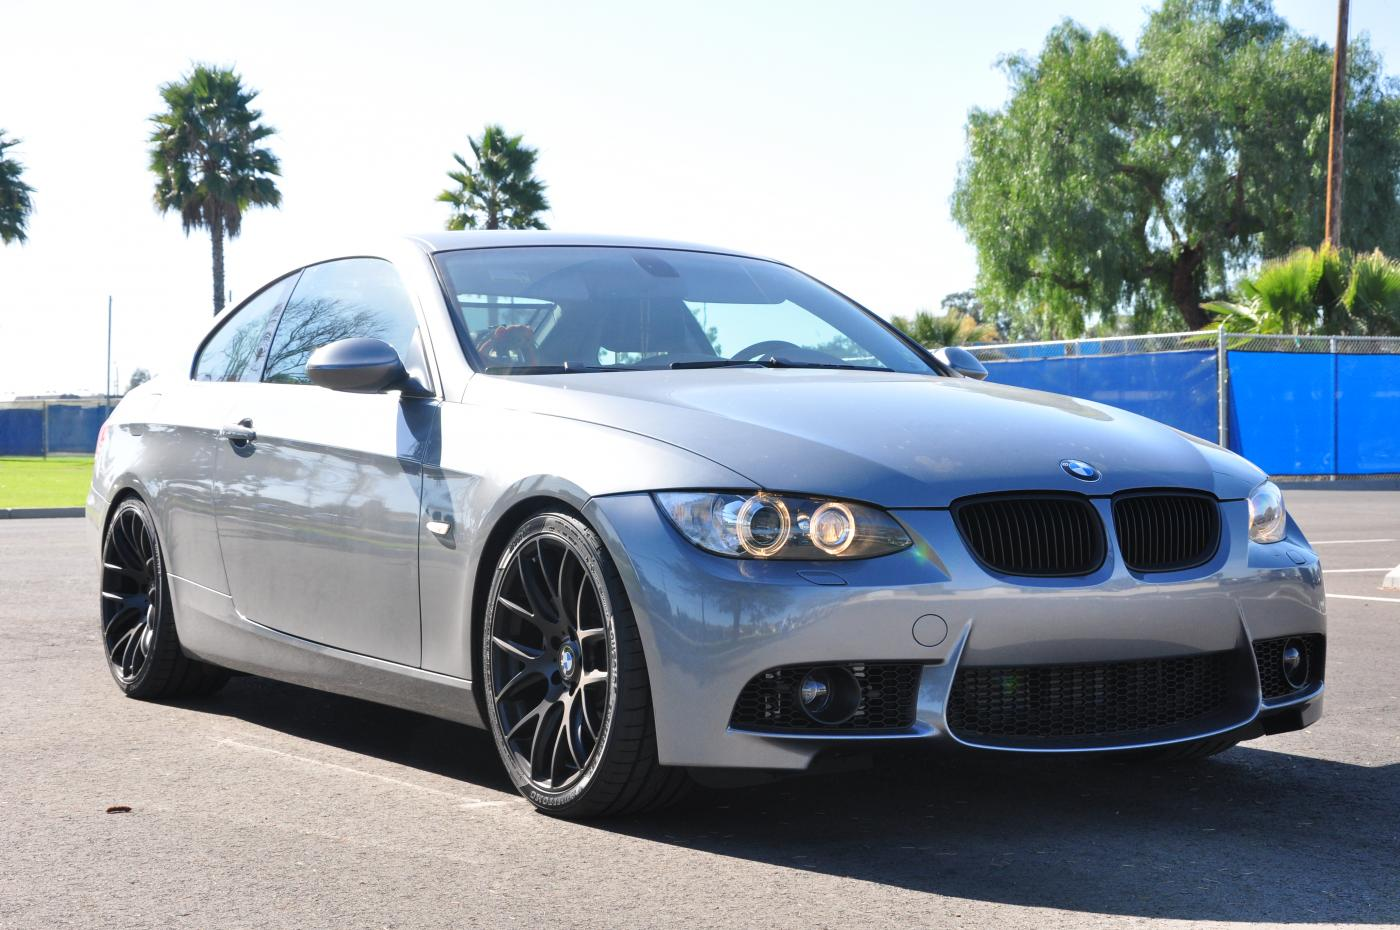 BMW 335I Coupe For Sale >> For Sale 2007 Bmw 335i Coupe Socal Bmw 3 Series E90 E92